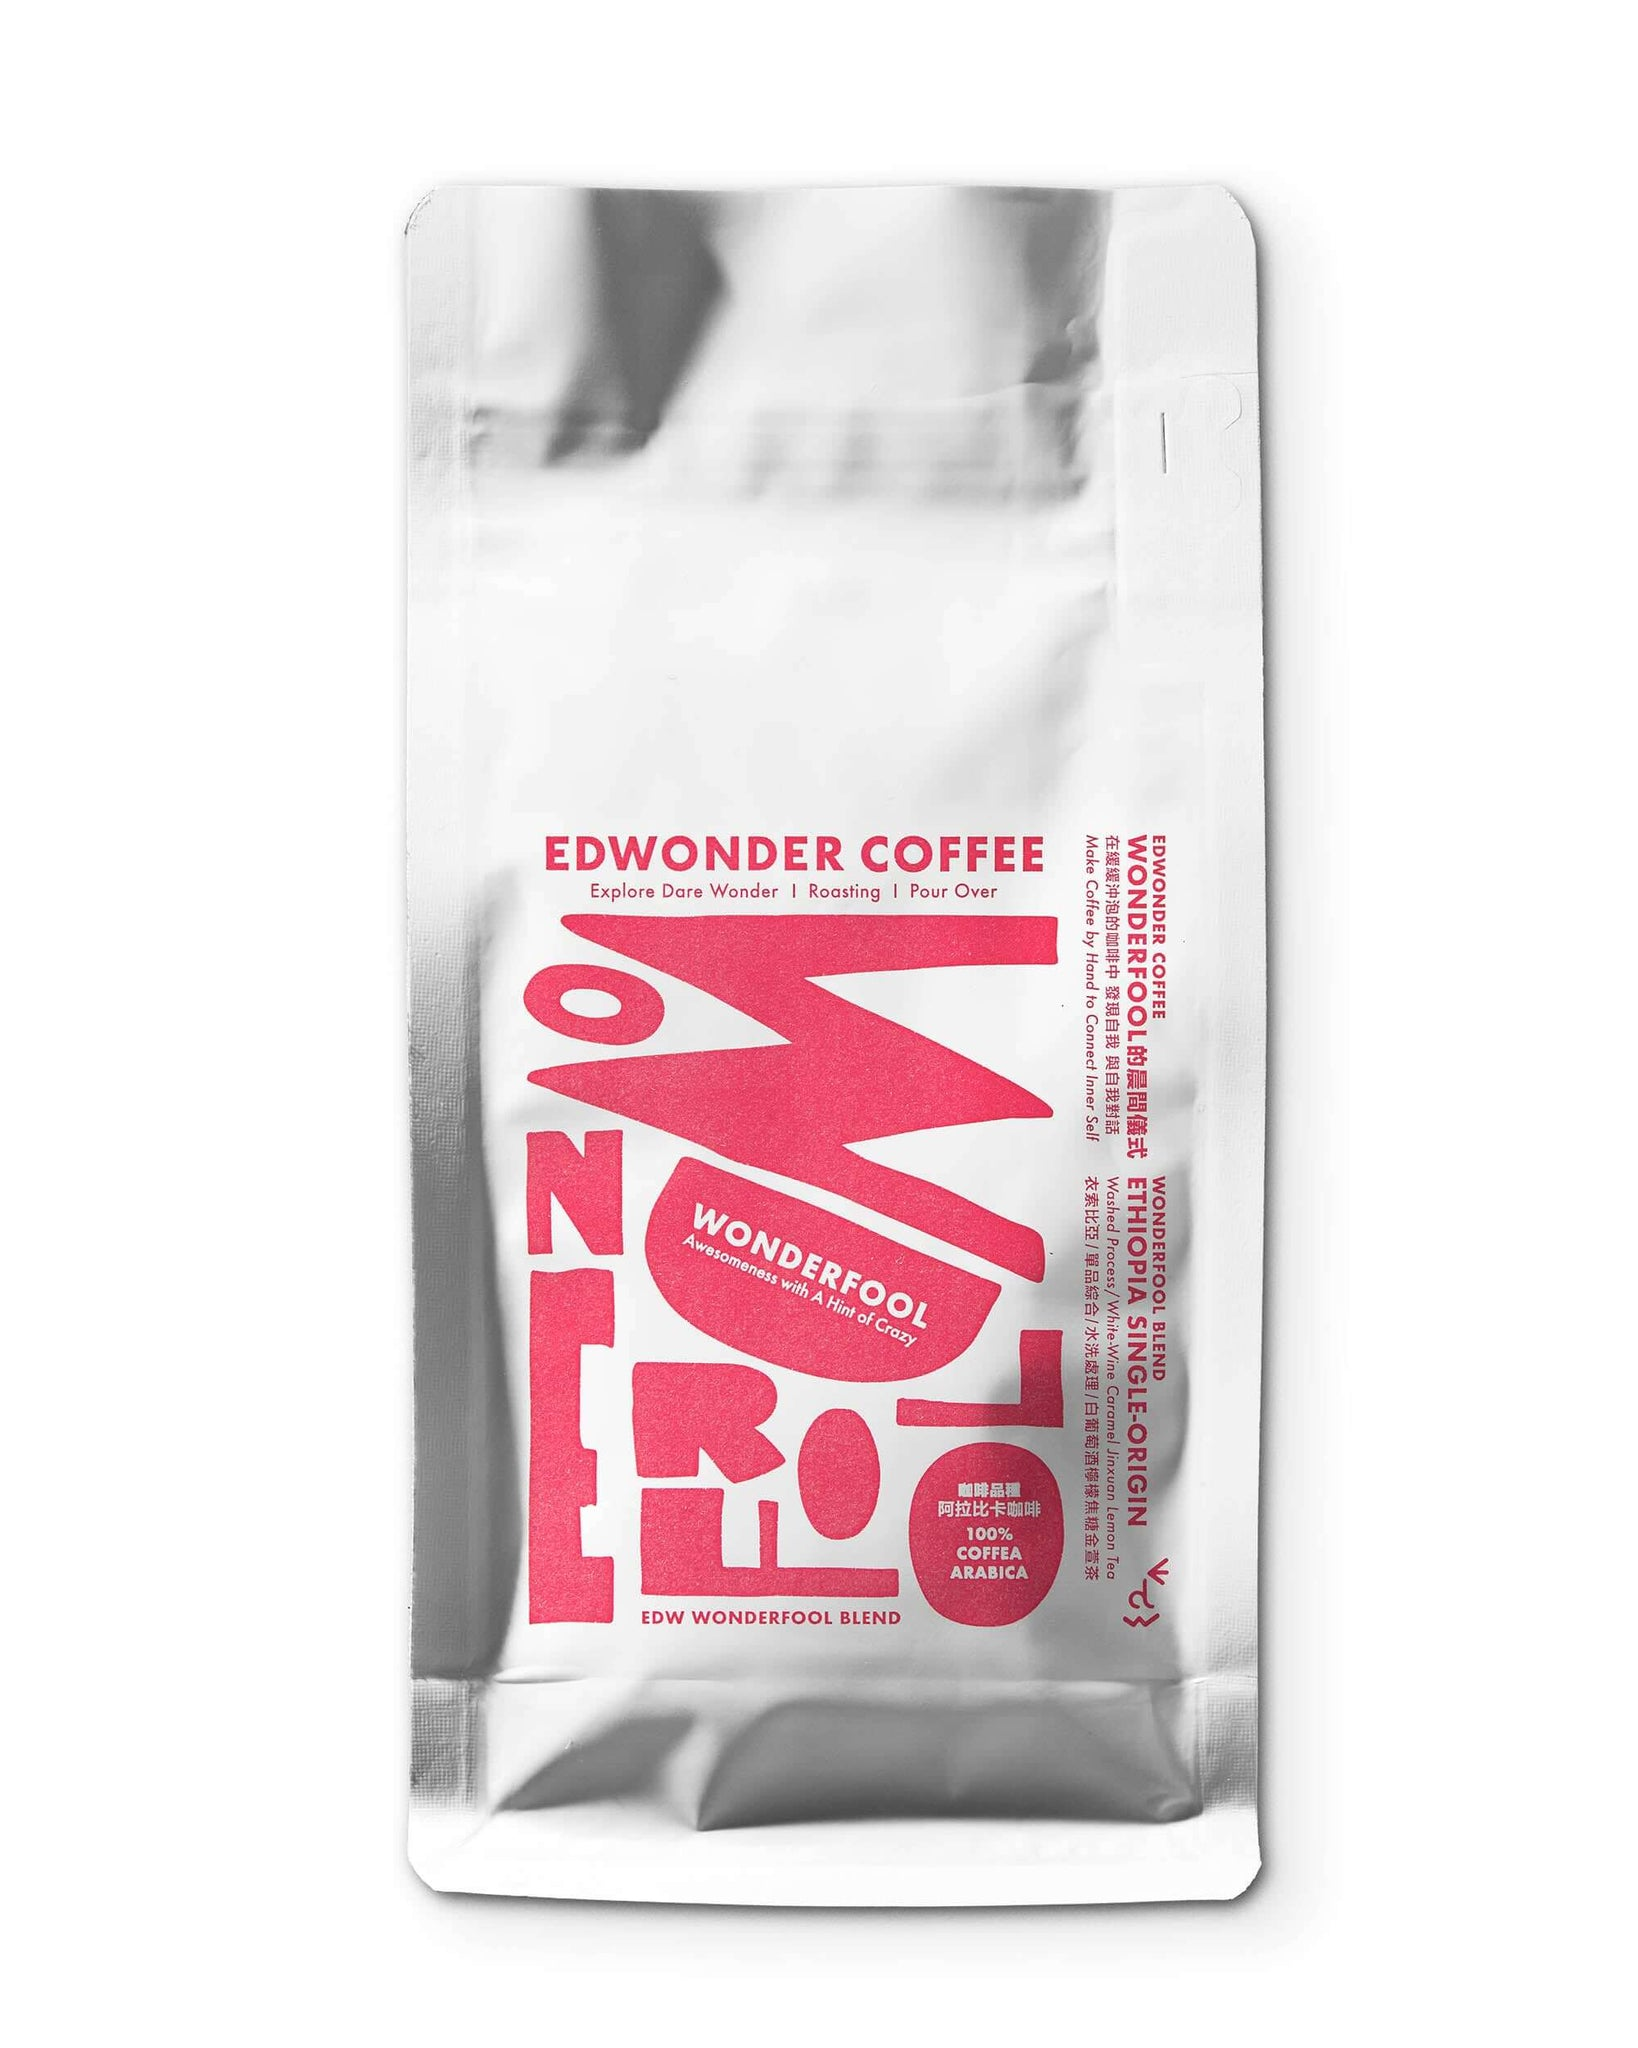 EdWonder Coffee_Whole Bean_1/4lb (7 Servings)